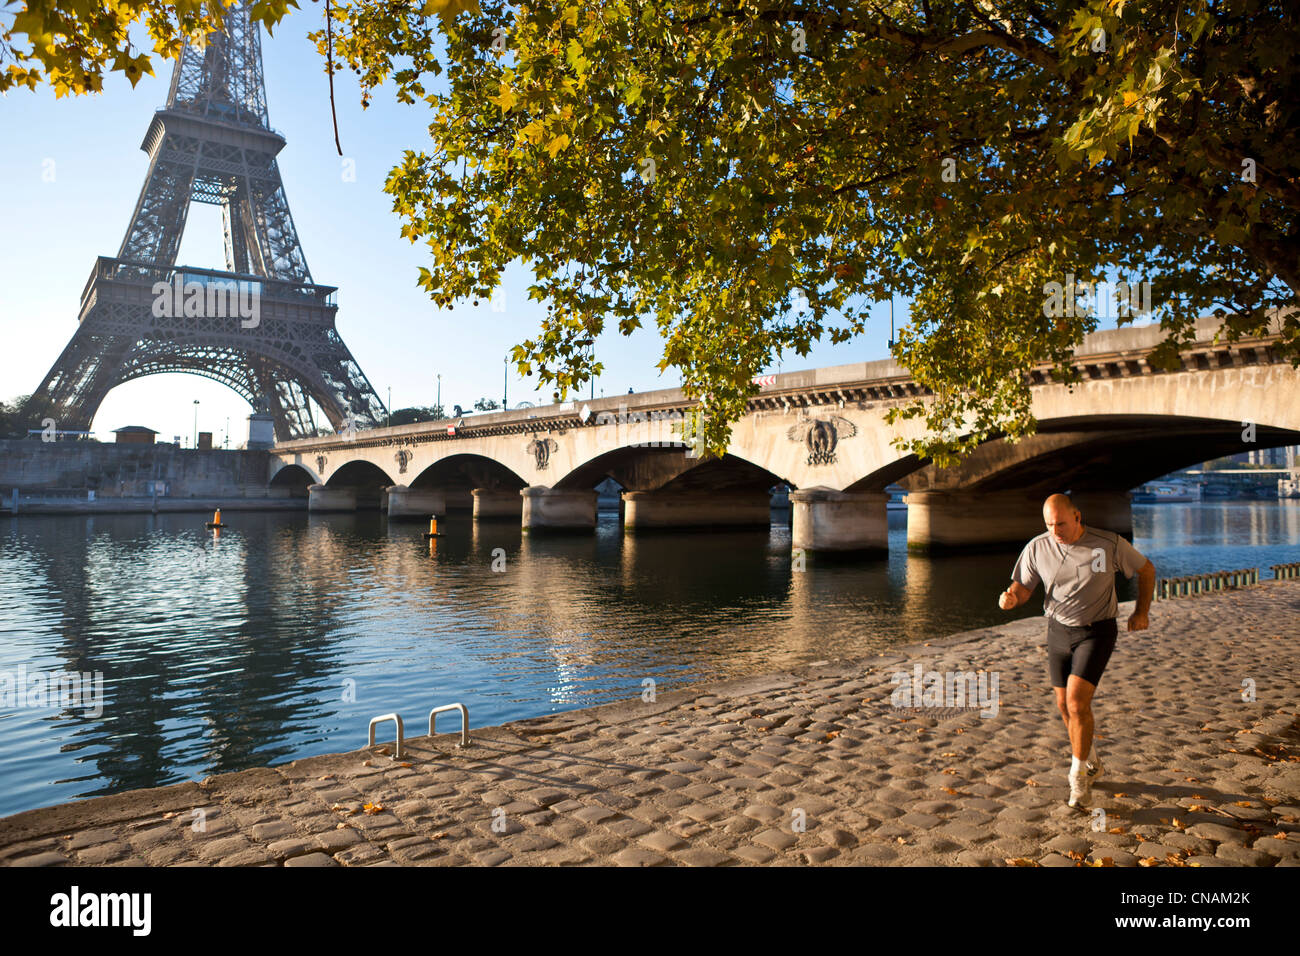 France, Paris, Seine river banks, listed as World Heritage by UNESCO, the port and the Eiffel Tower Debilly - Stock Image